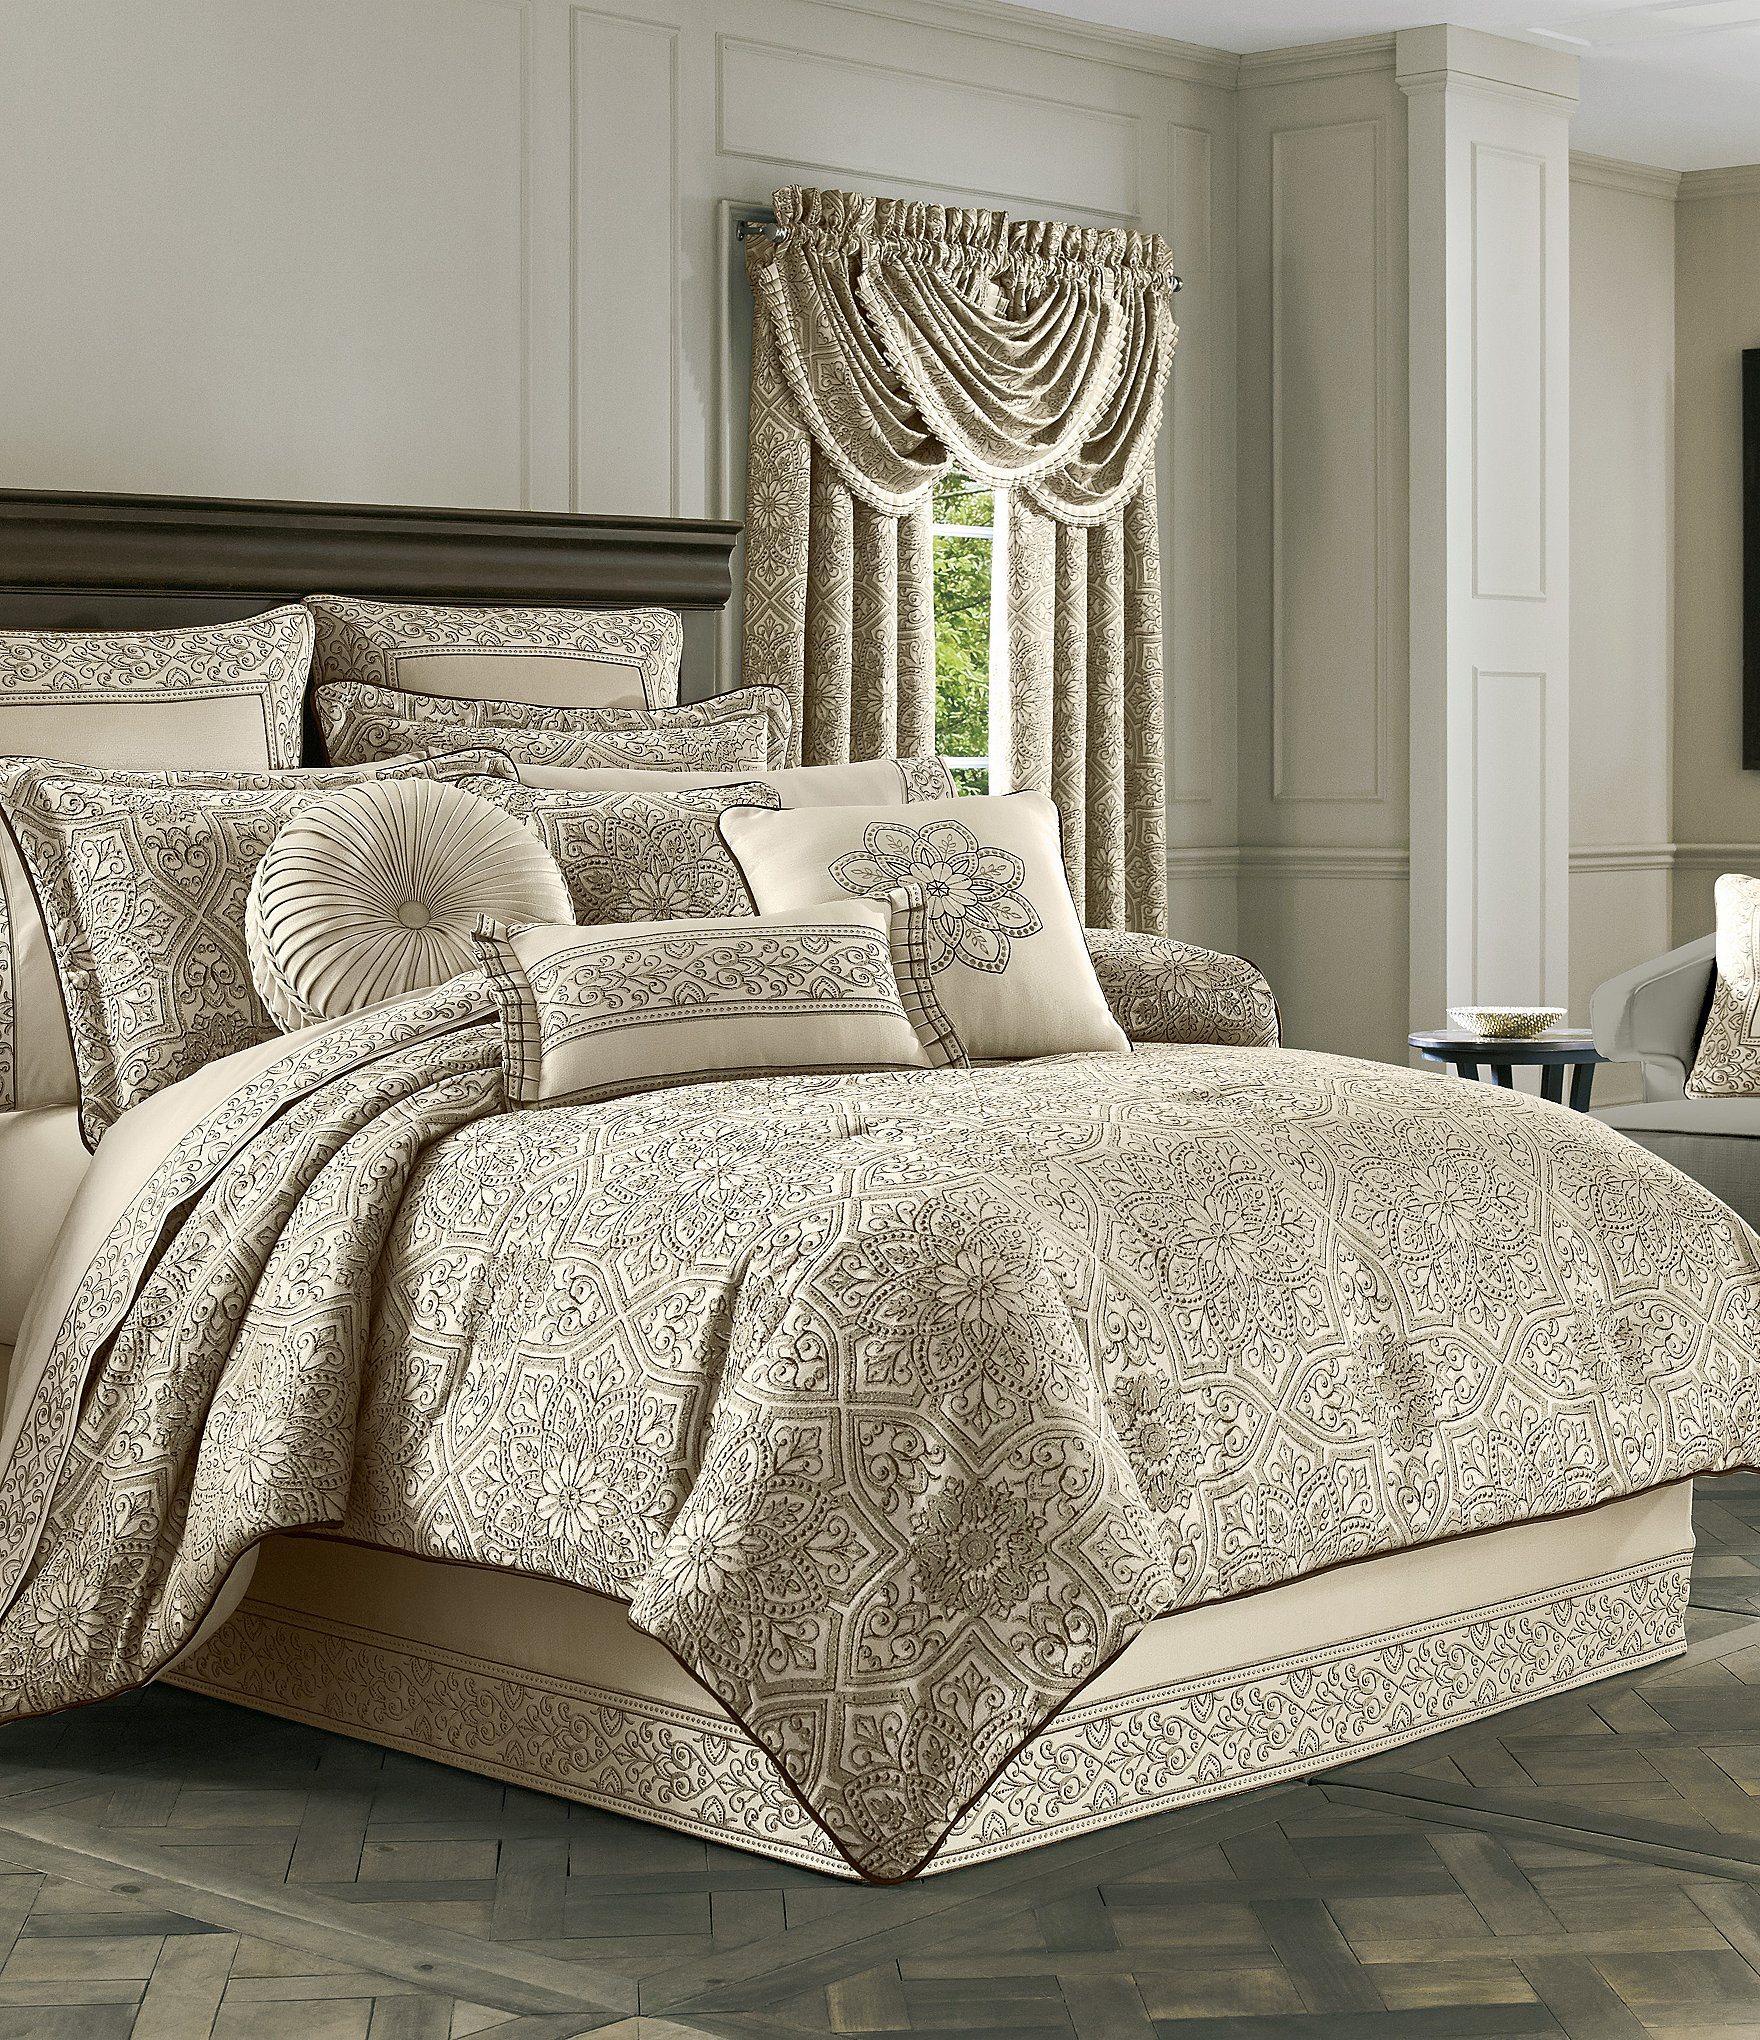 J Queen New York Mirabella Comforter Set Dillards